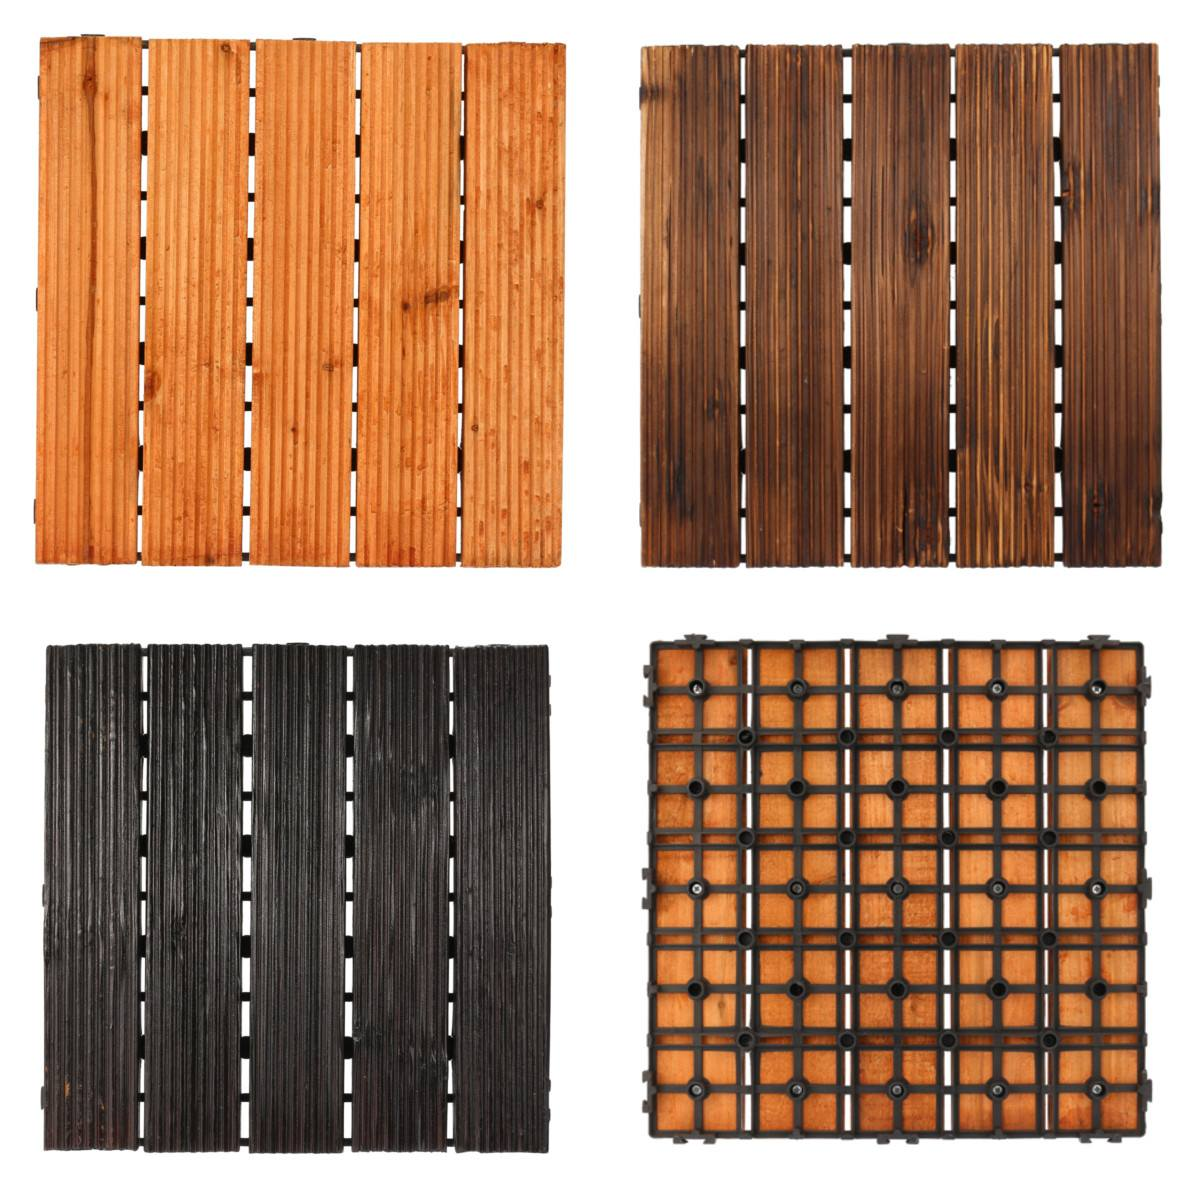 DIY Wood Patio Interlocking Flooring Decking Tile Indoor Outdoor Garden Floor Decoration Furniture Accessories 3 Colors 30x30cm